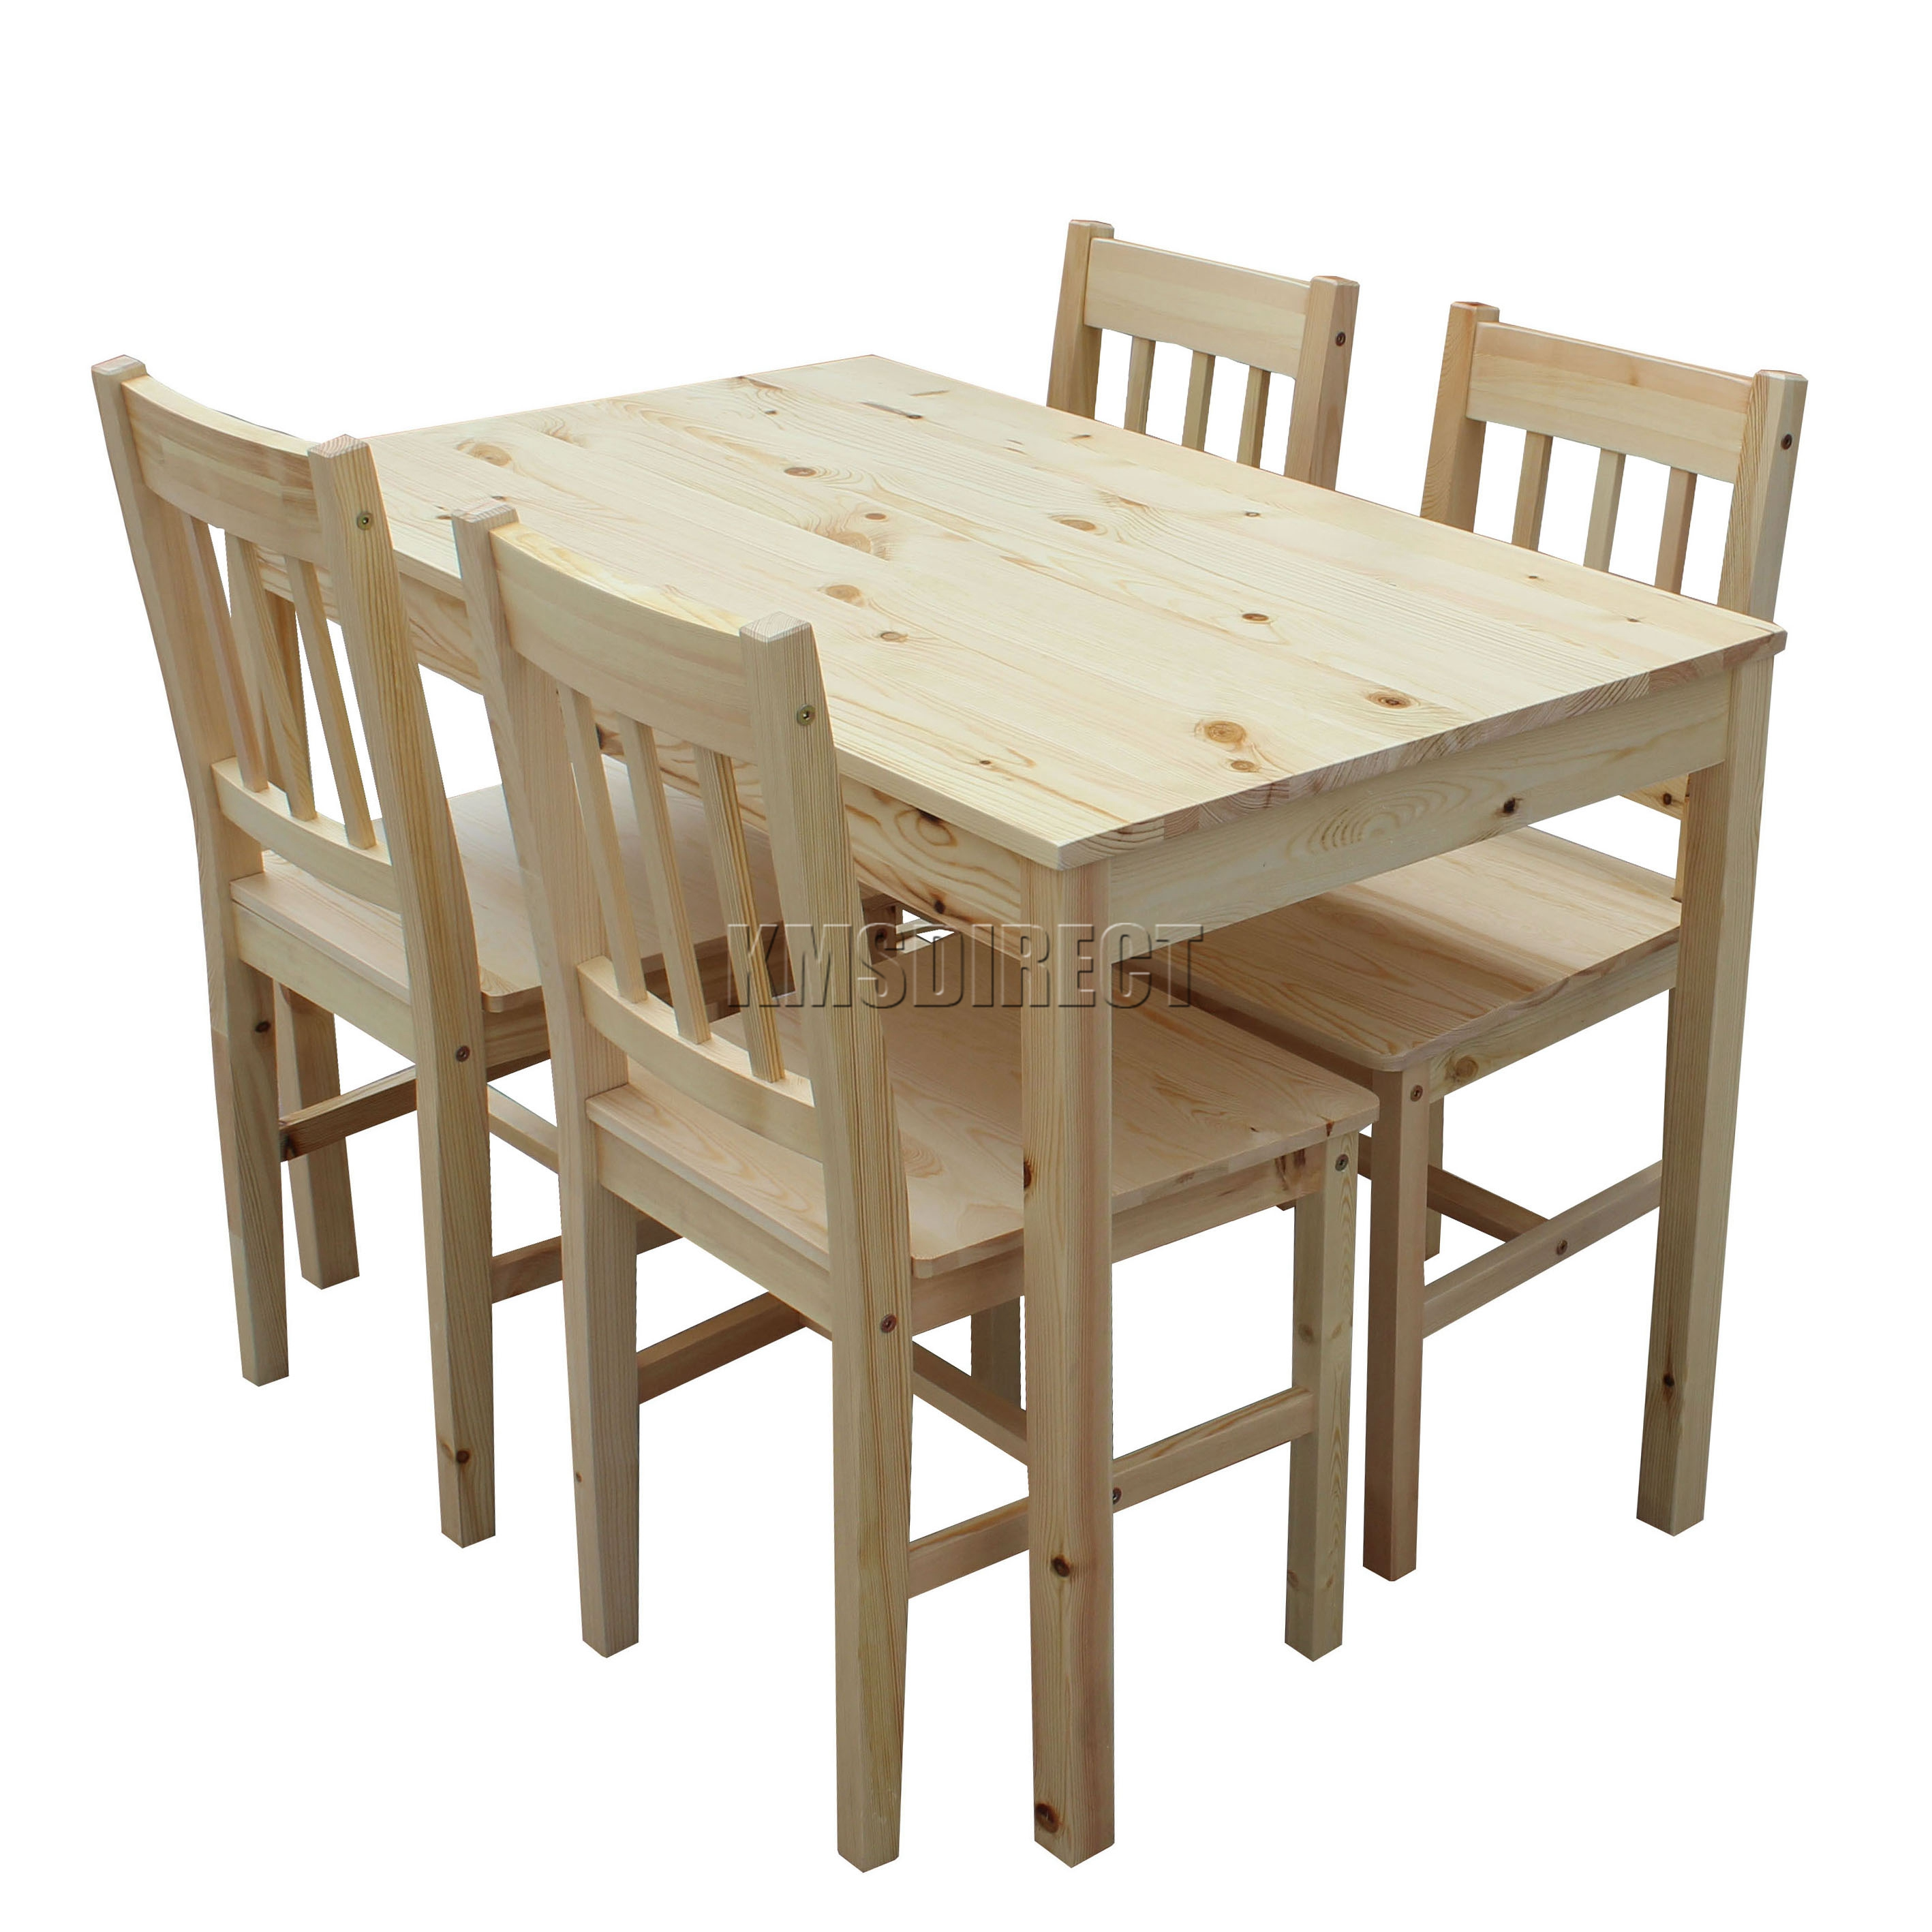 Foxhunter solid wooden dining table with 4 chairs set for Pine kitchen furniture